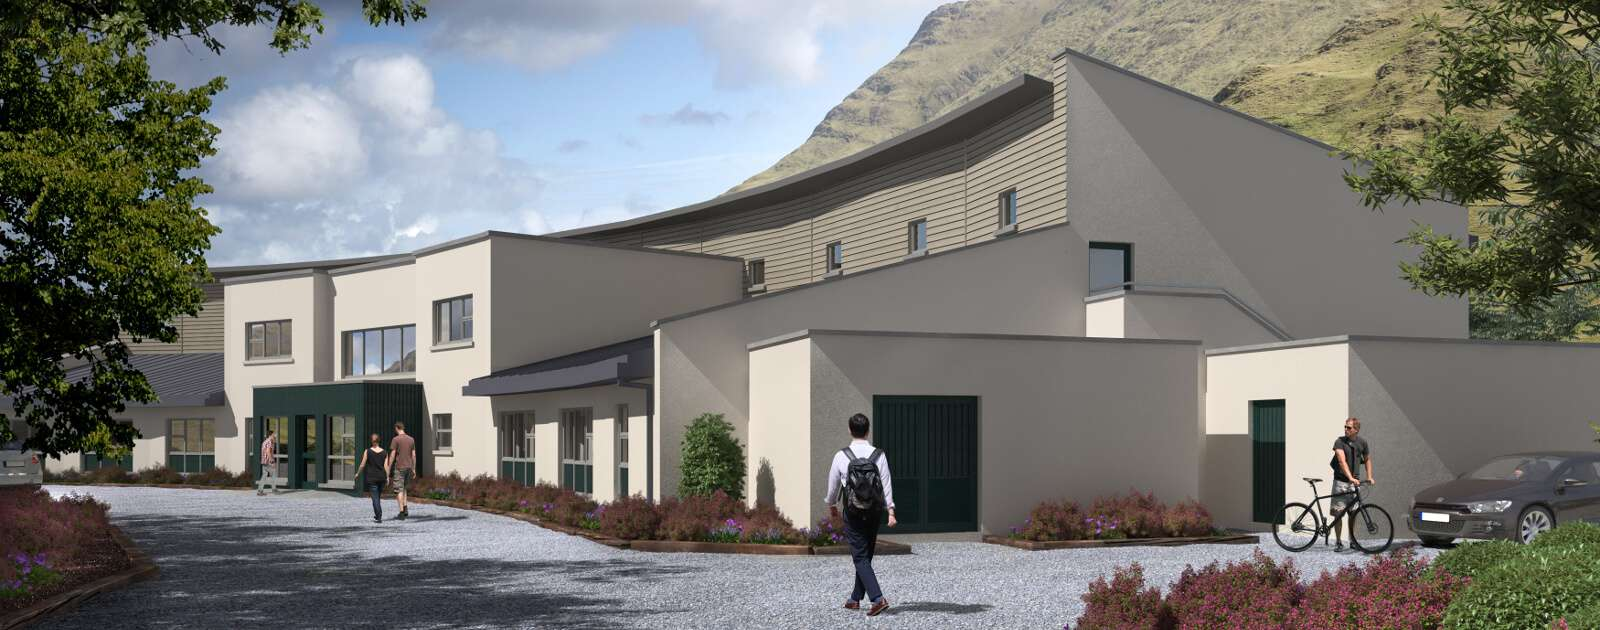 new hostel in connemara